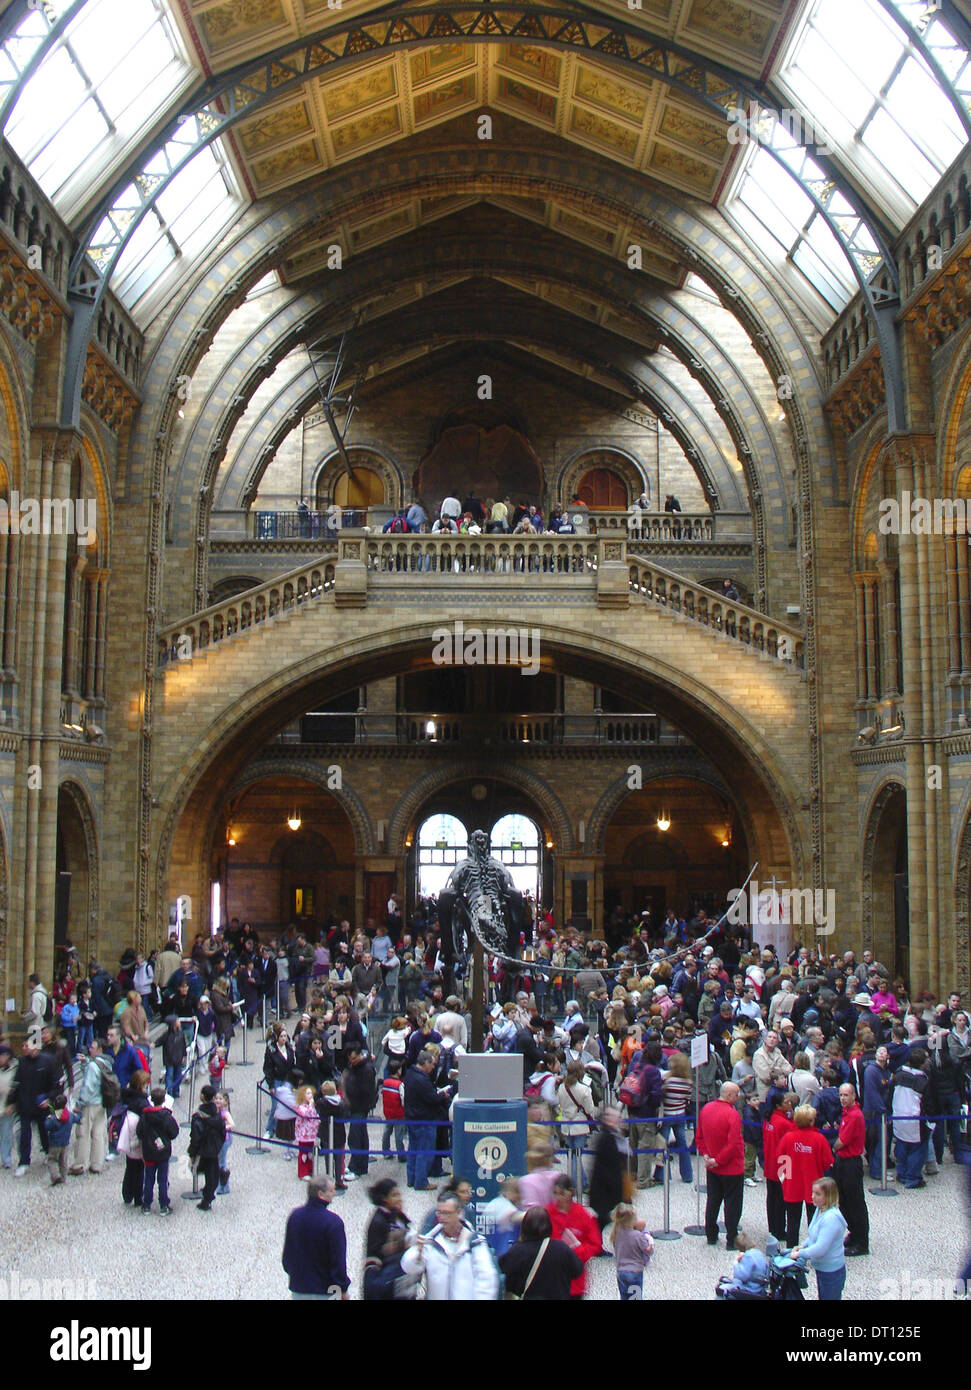 Visitors at the main hall of Natural History Museum, London England UK - Stock Image